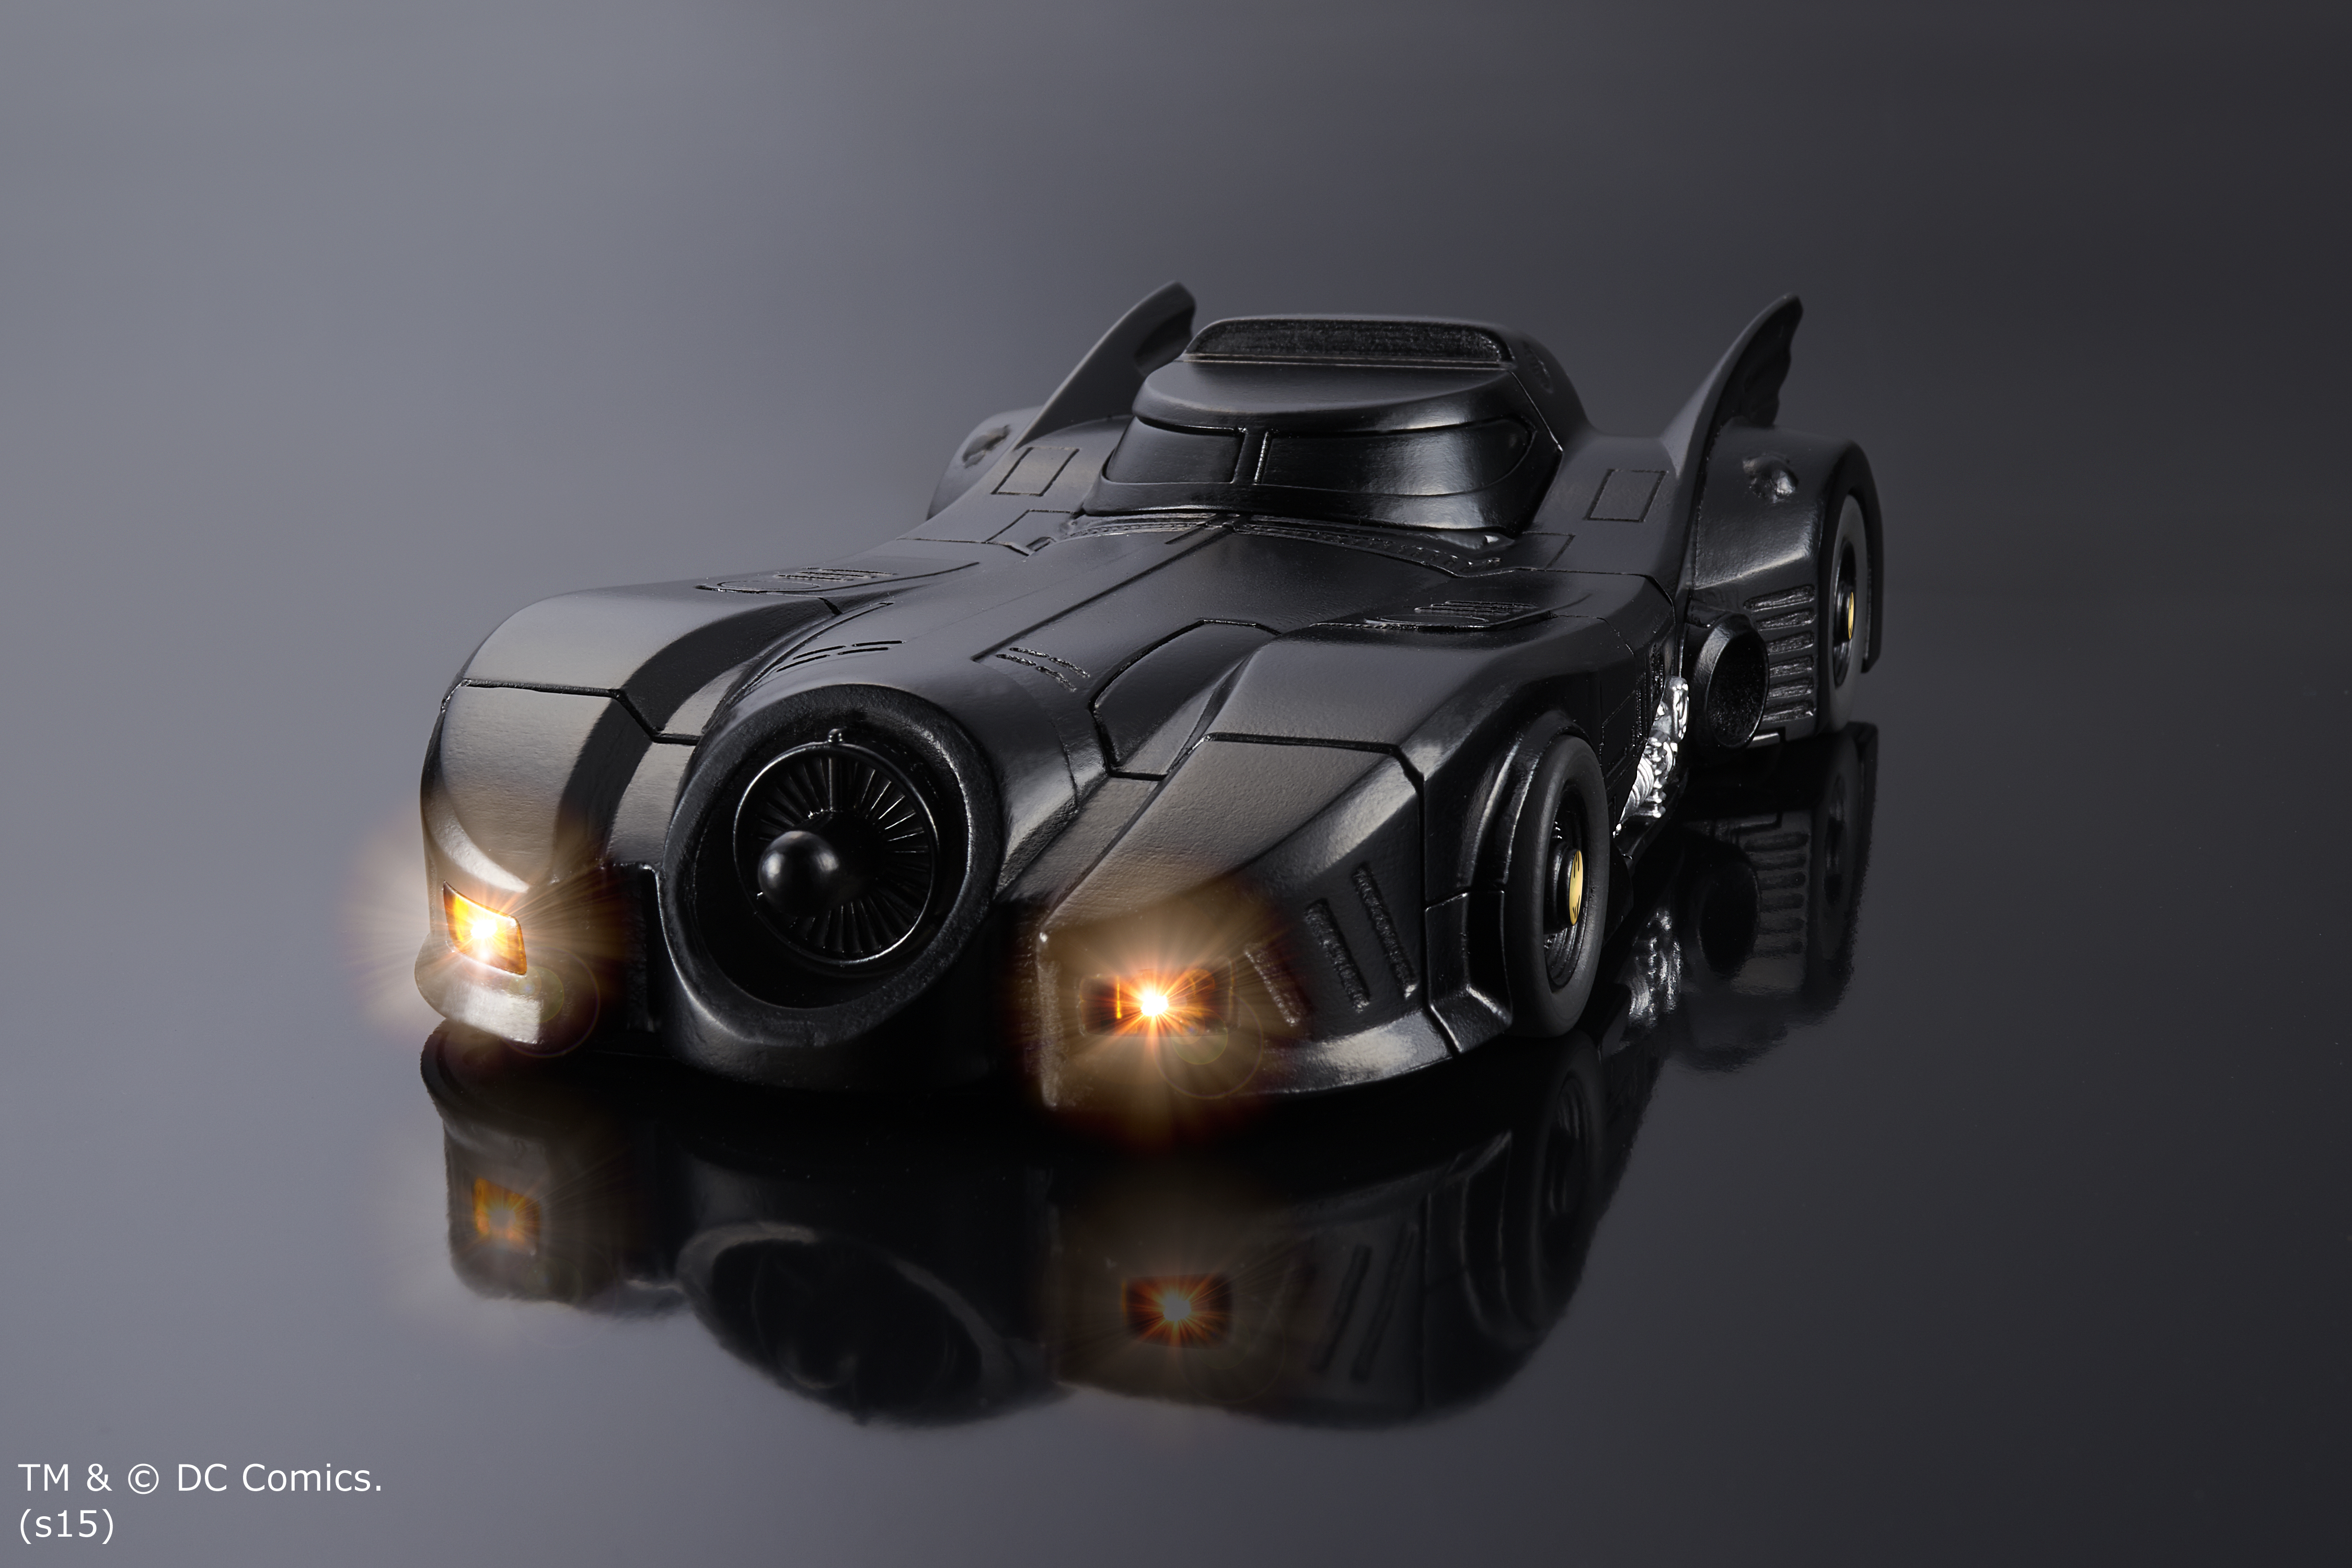 CRAZY CASE BATMOBILE(1)